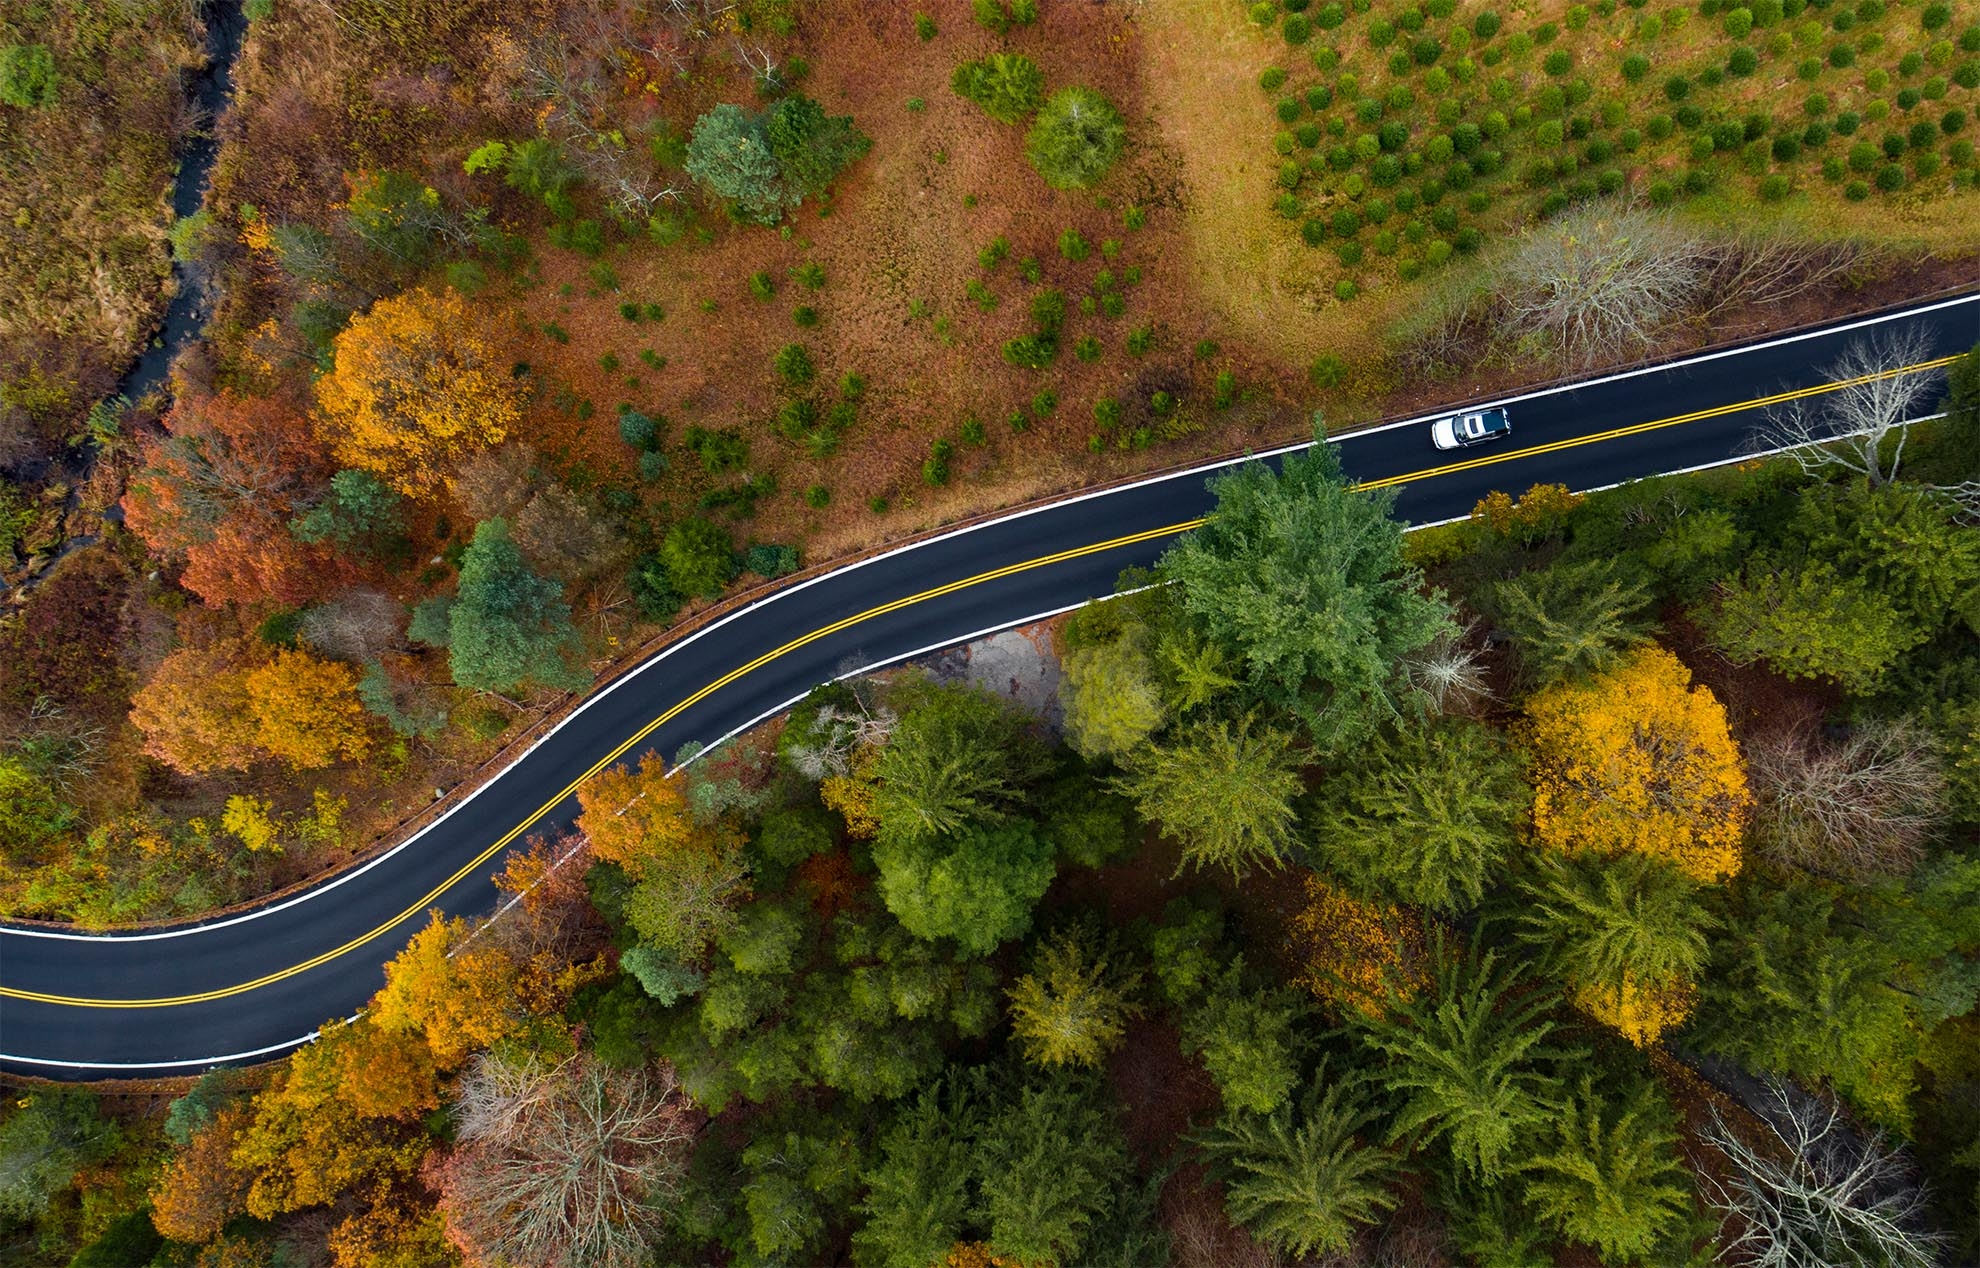 Photograph of a birds eye view of a car on an Autumn road in NJ taken with a drone